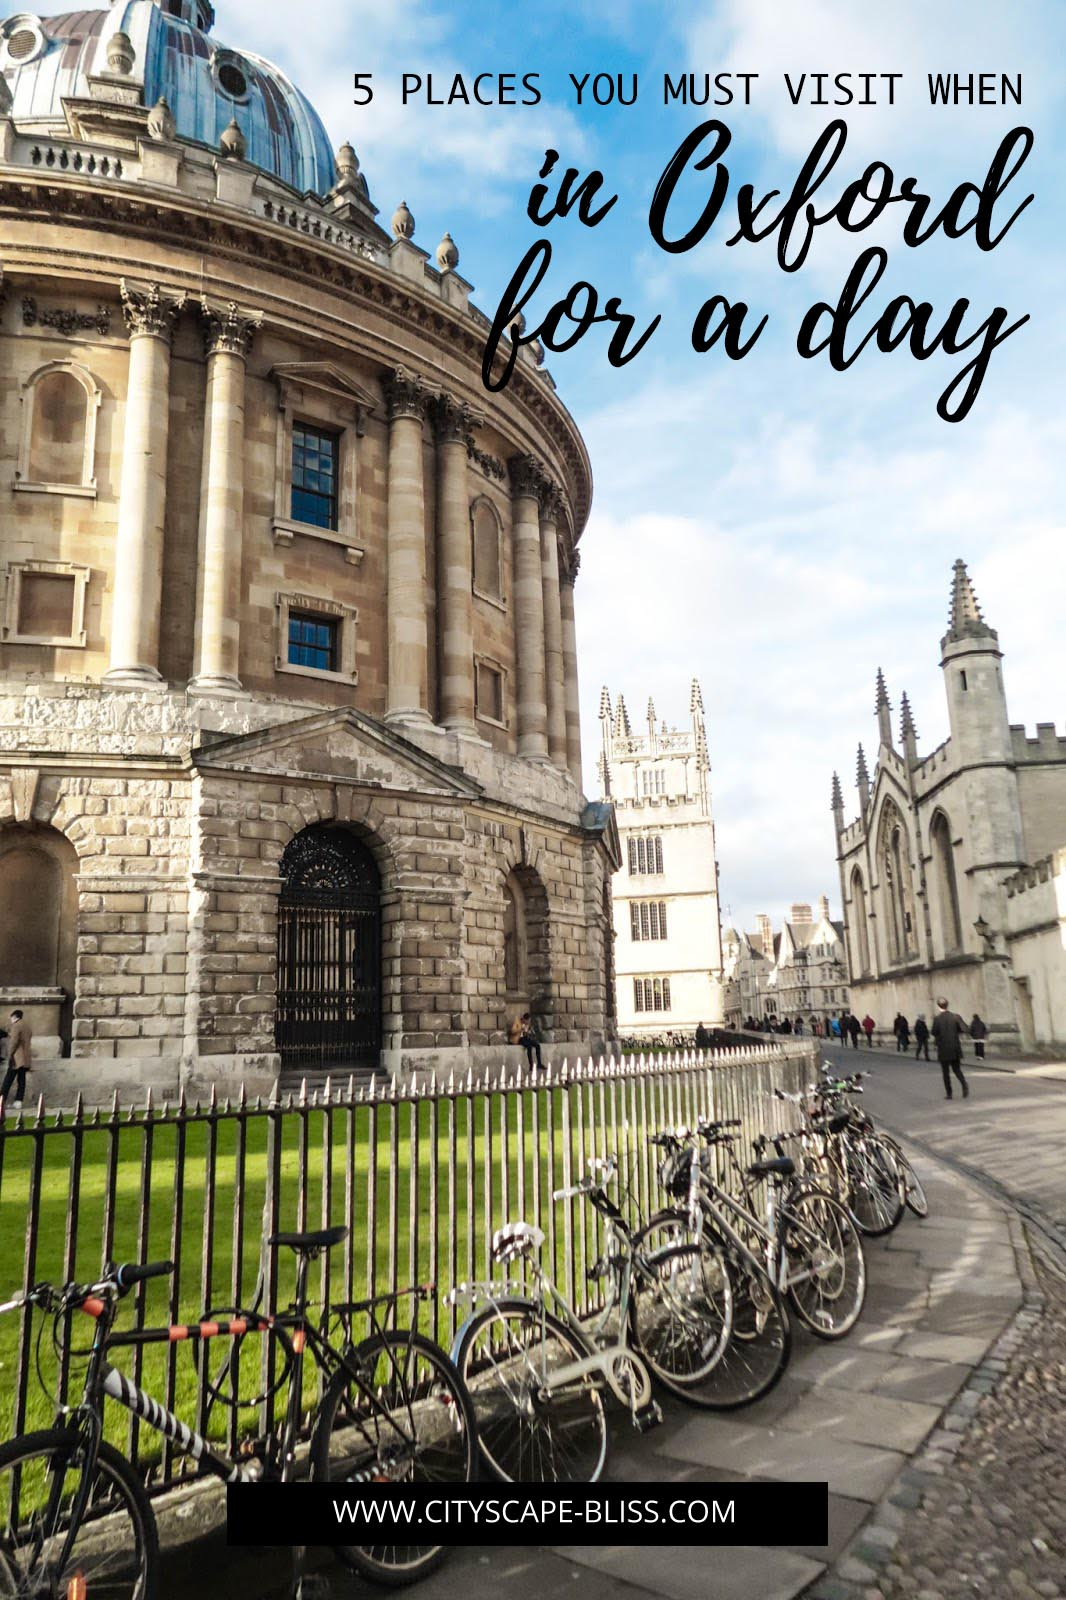 5 places you must visit when in Oxford for a day